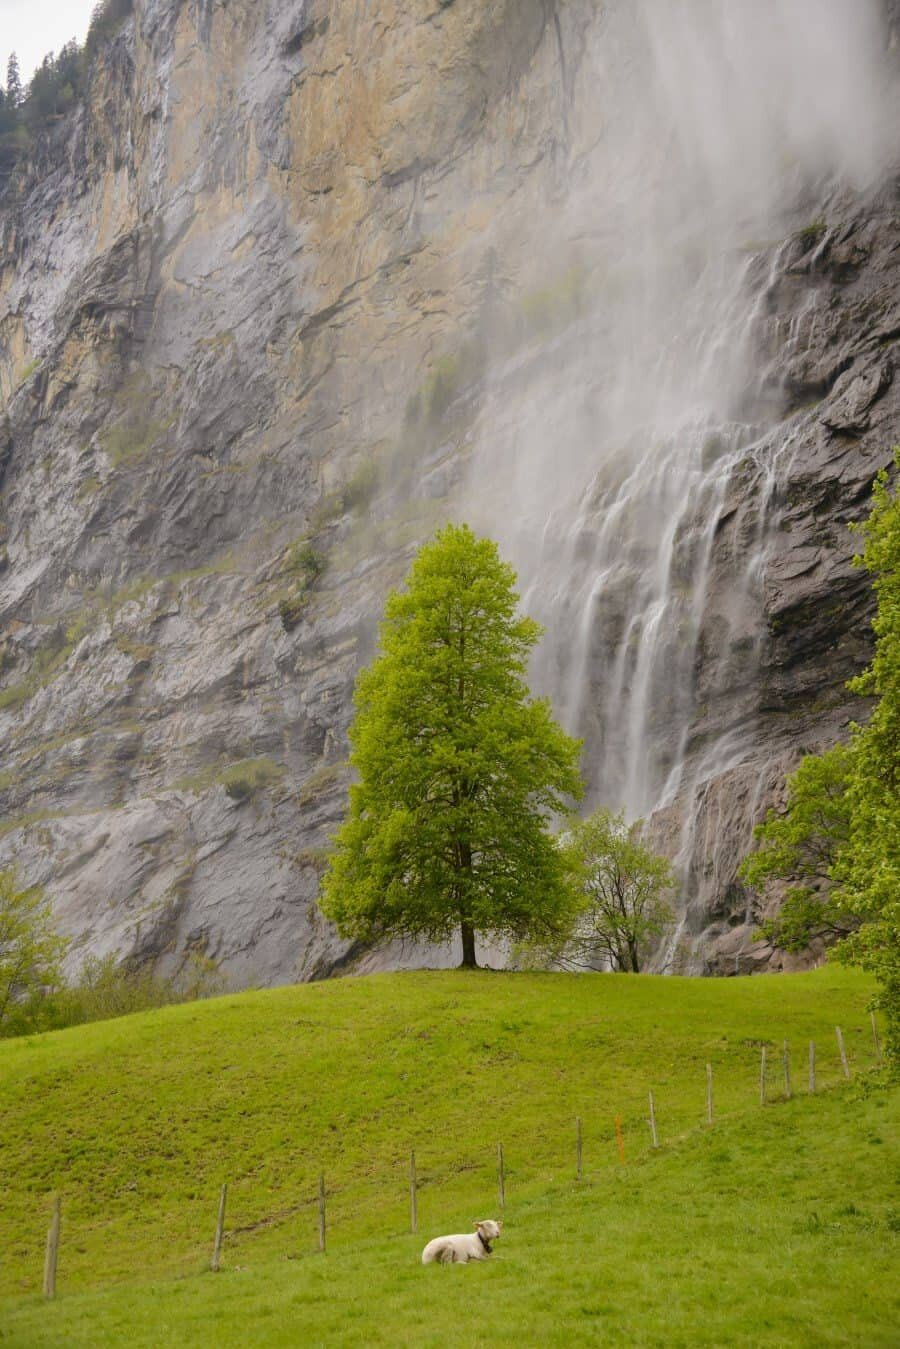 jungfrau-travel-guide-wengen-lauterbrunnen-and-grindelwald-by-the-wandering-lens-54